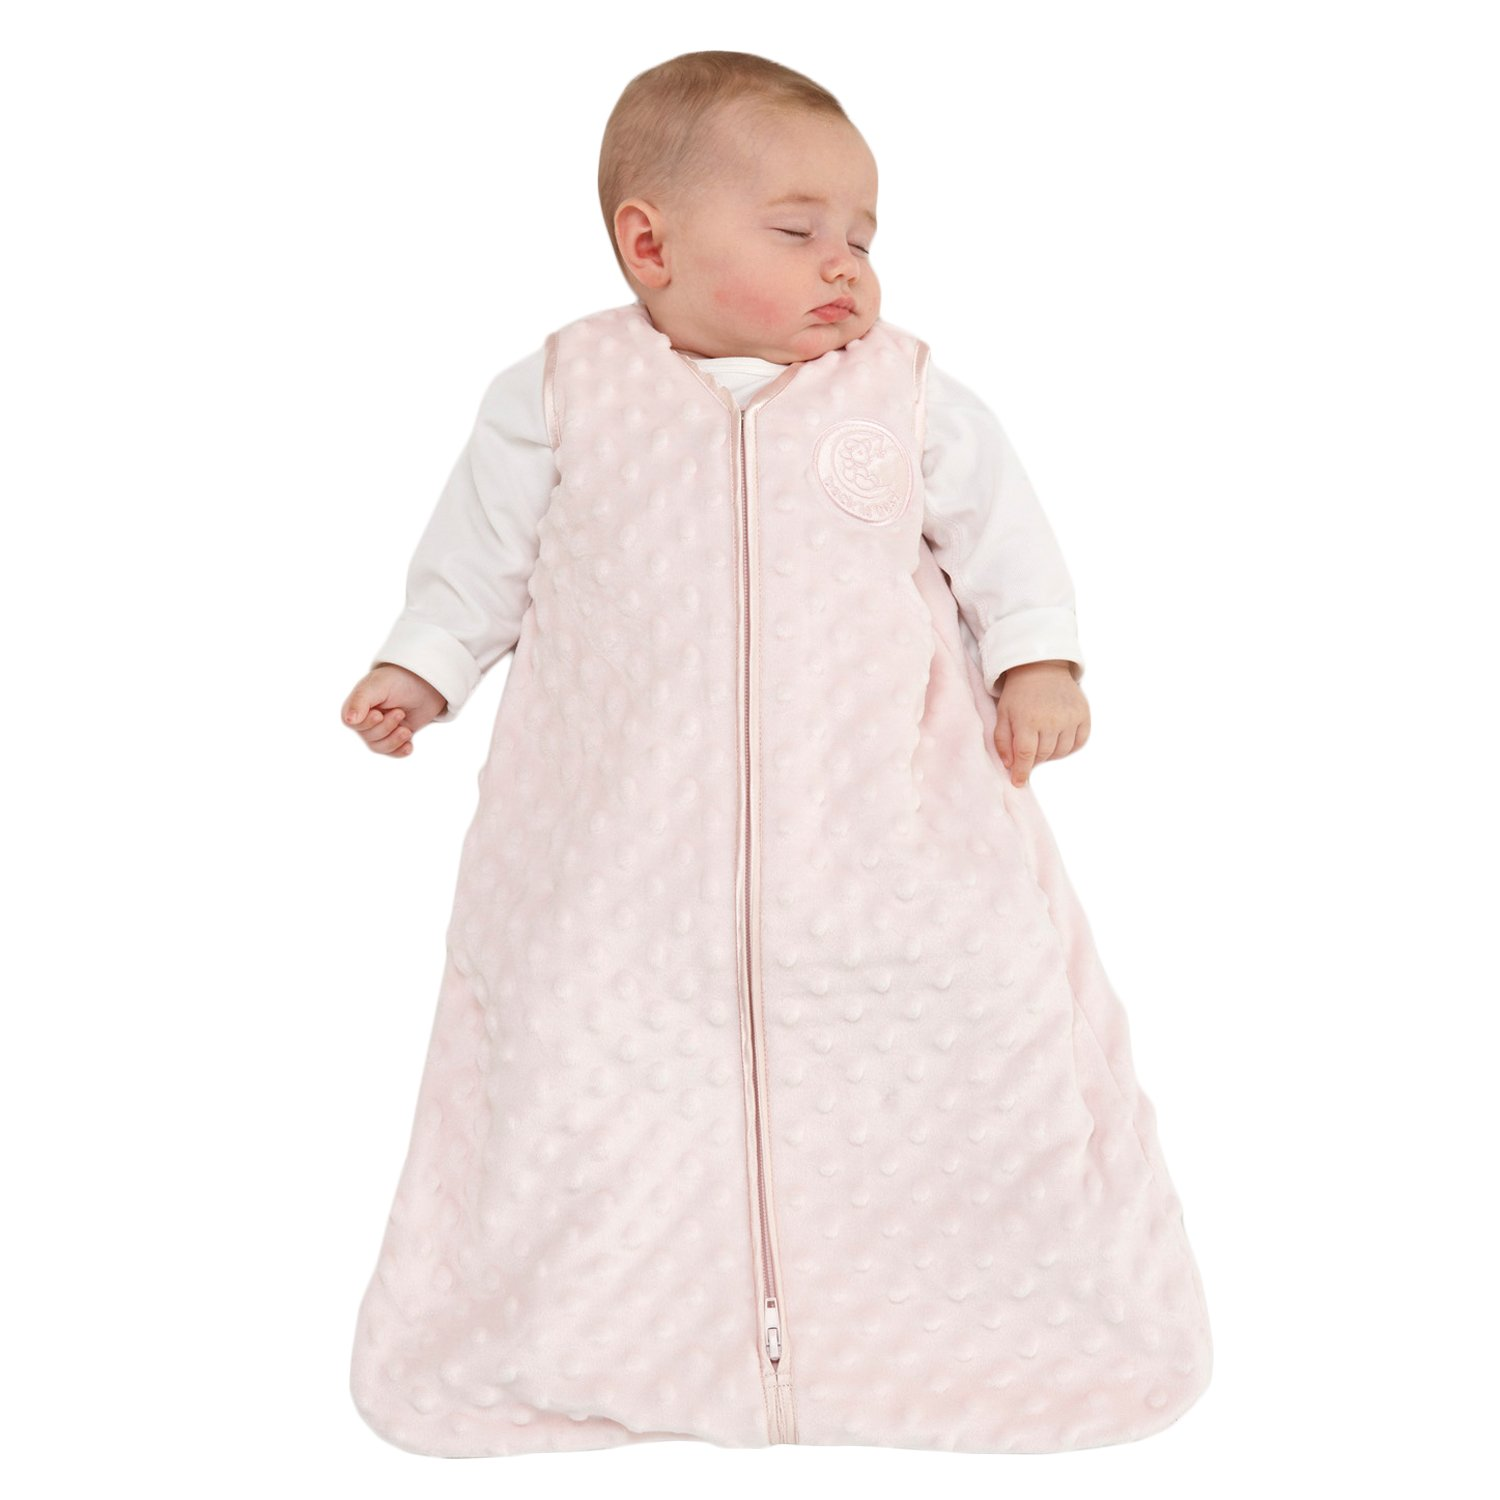 HALO Sleepsack Wearable Blanket, Velboa, Pink Plush Dots, Large